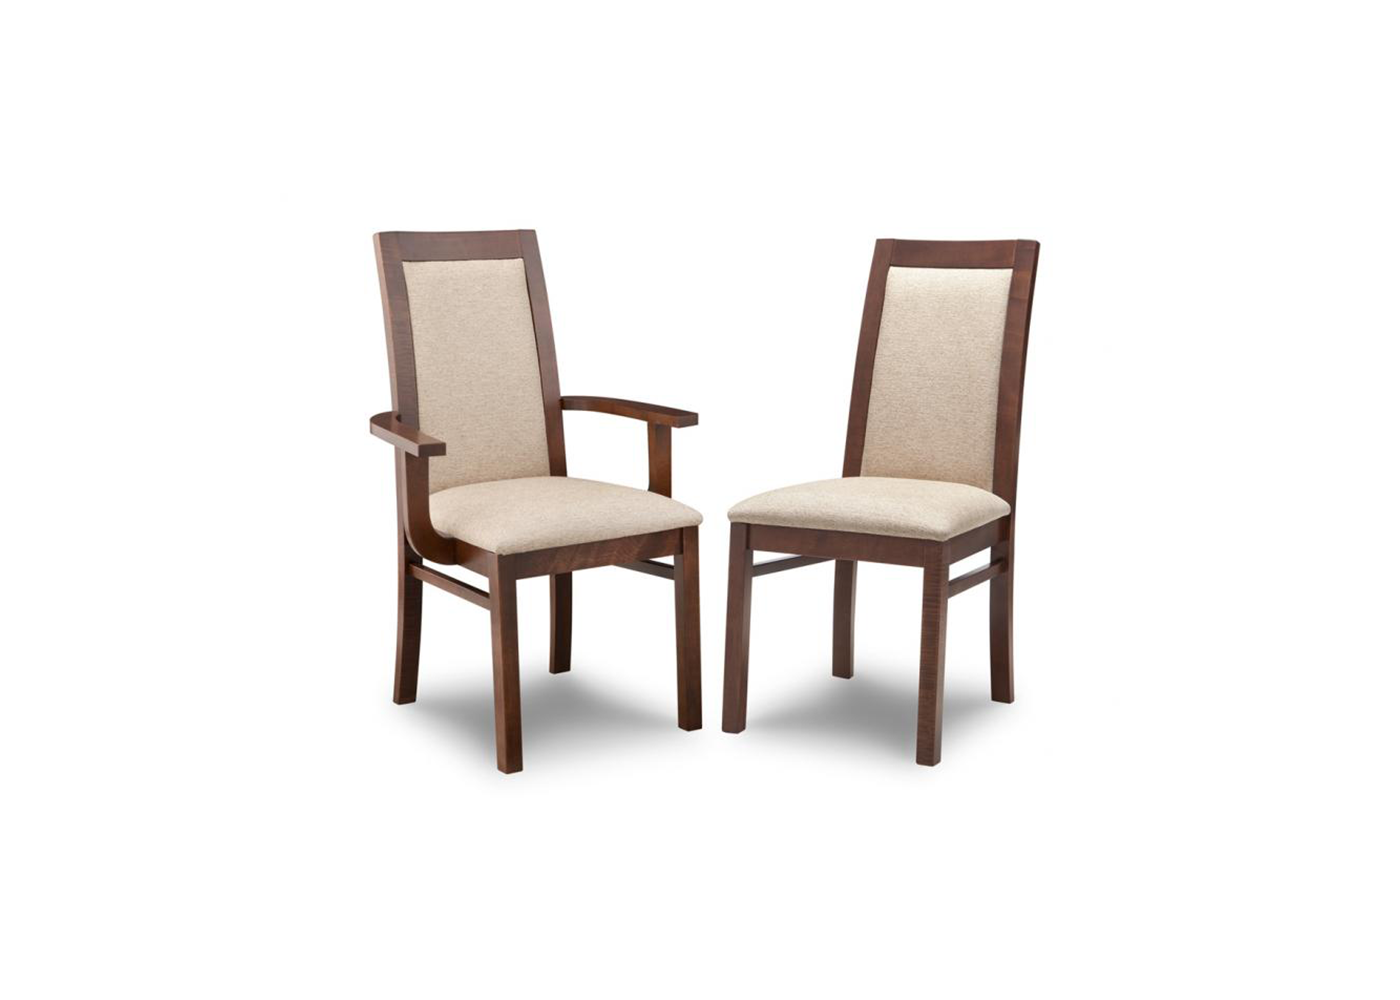 Polanco Furniture Store Ottawa Interior Decor Solutions Dining Chairs